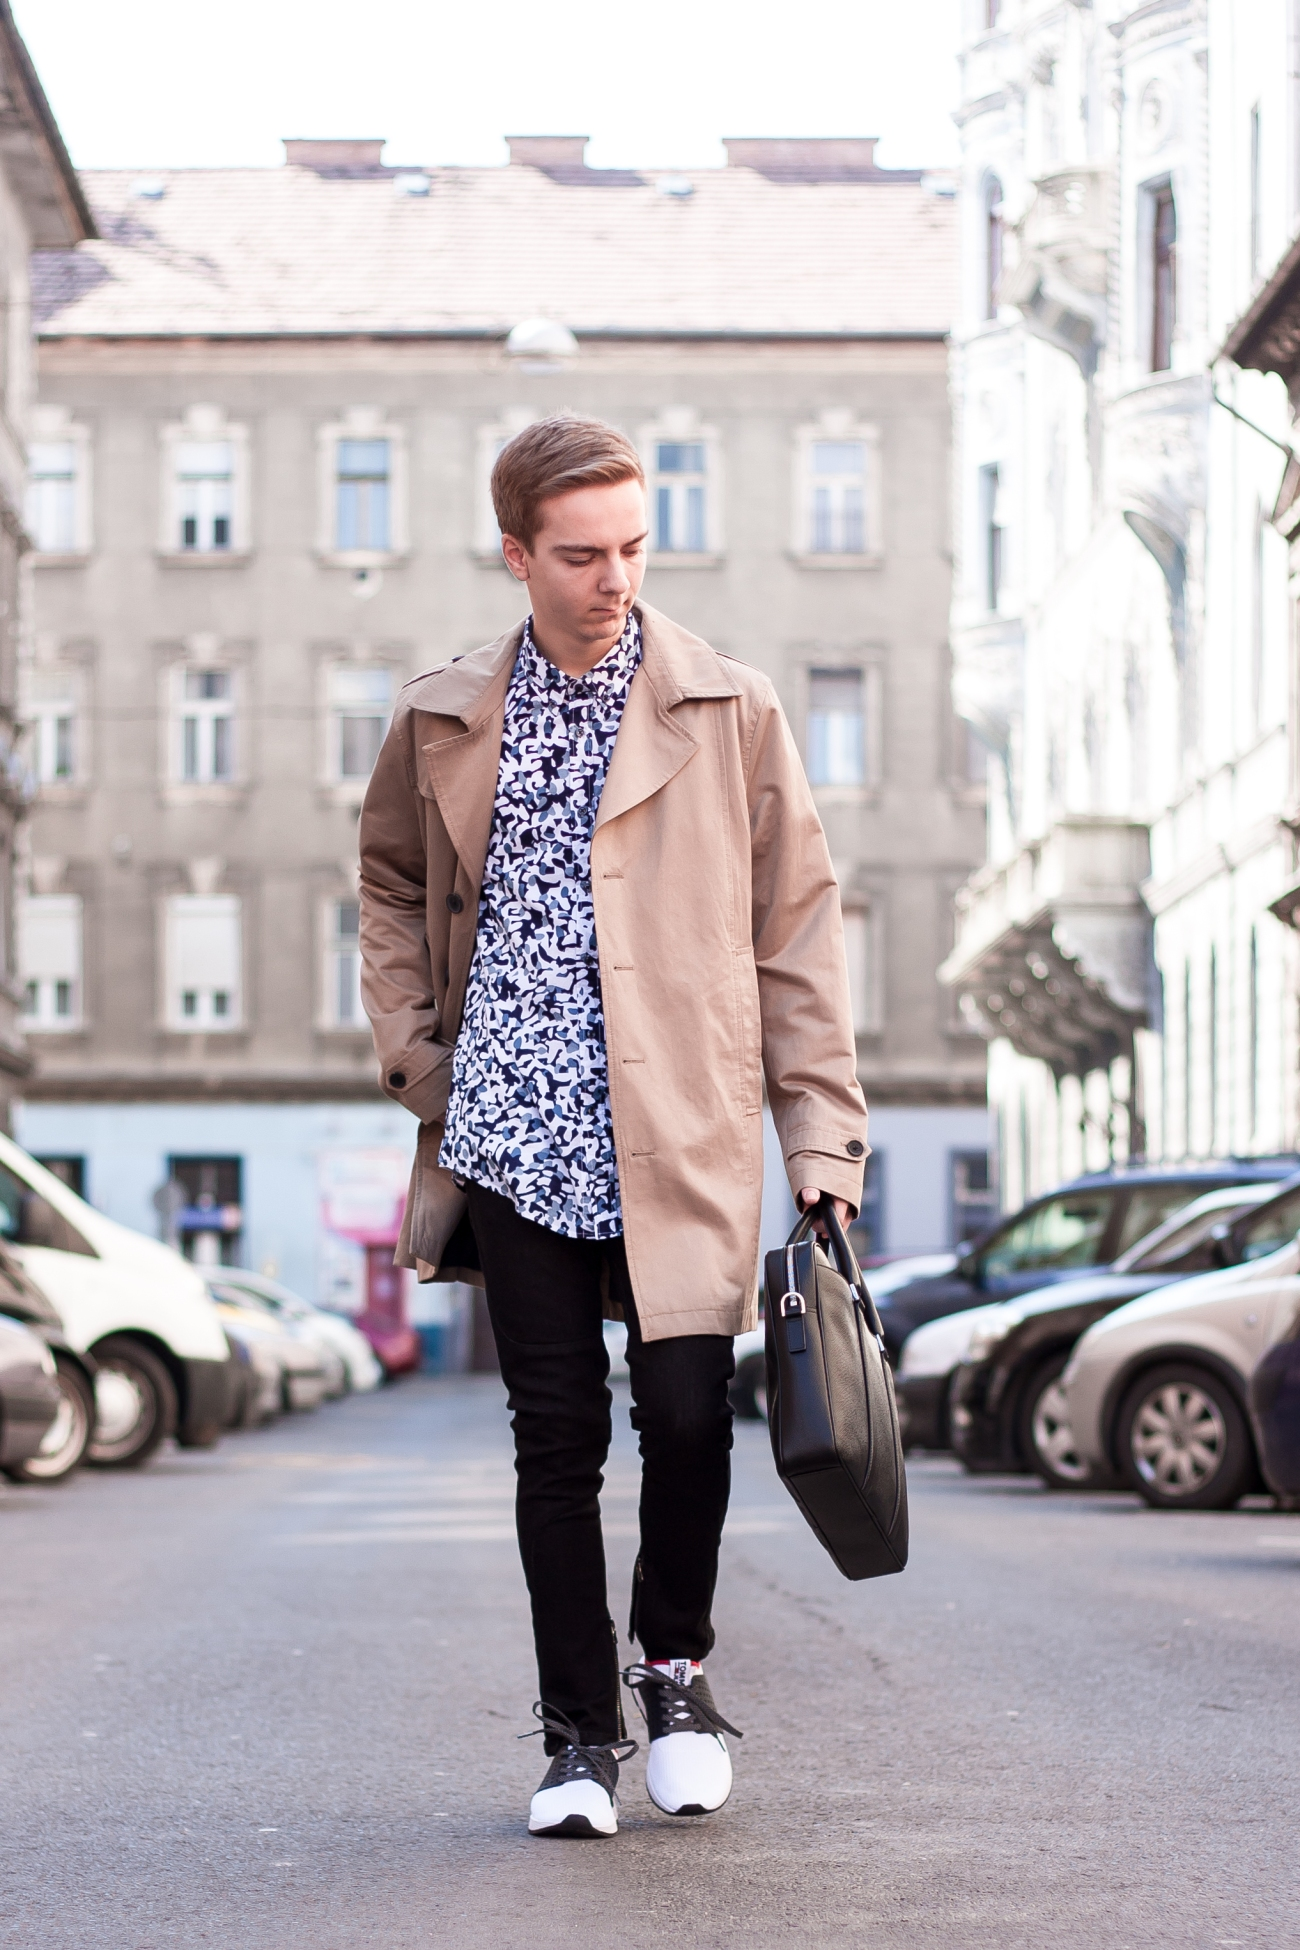 Trench Coat and Hugo Boss Bag for a Casual Day | Balazs Zsalek